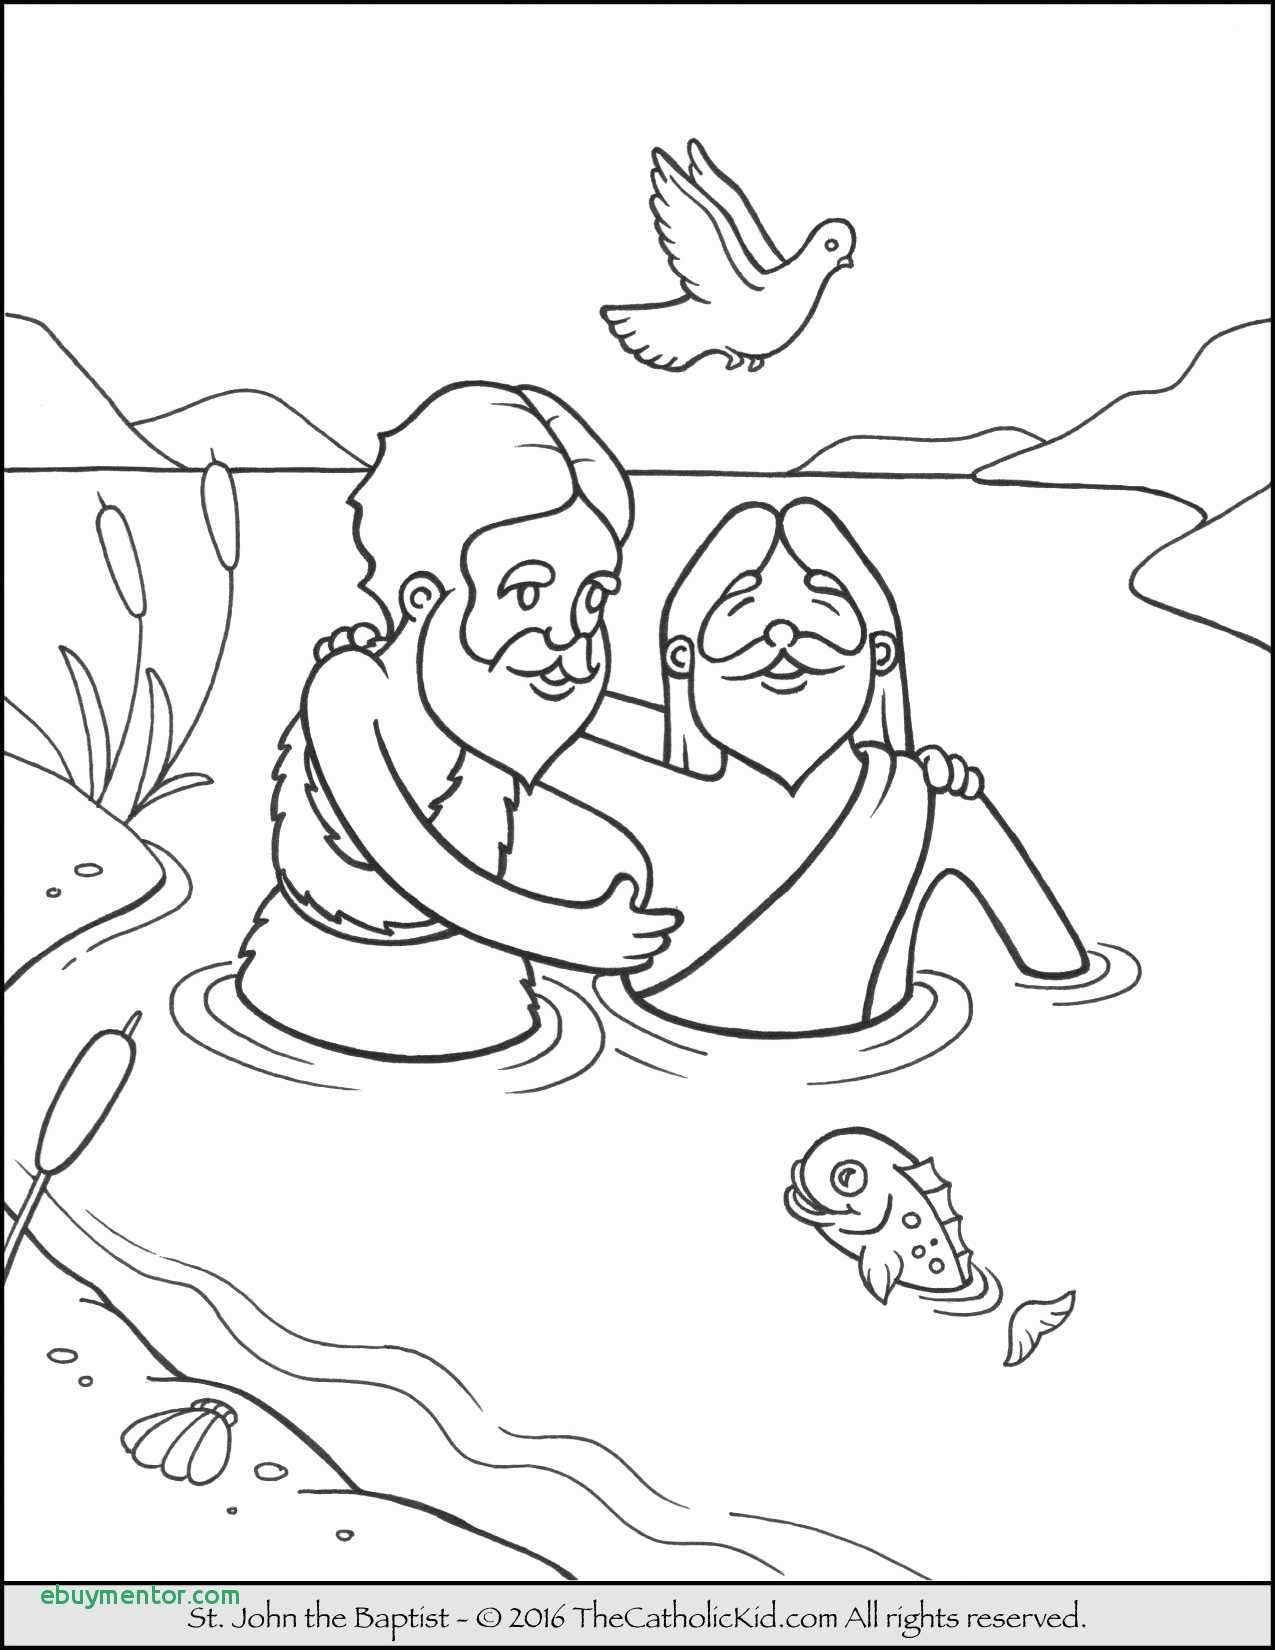 Hispanic Heritage Coloring Pages Gallery